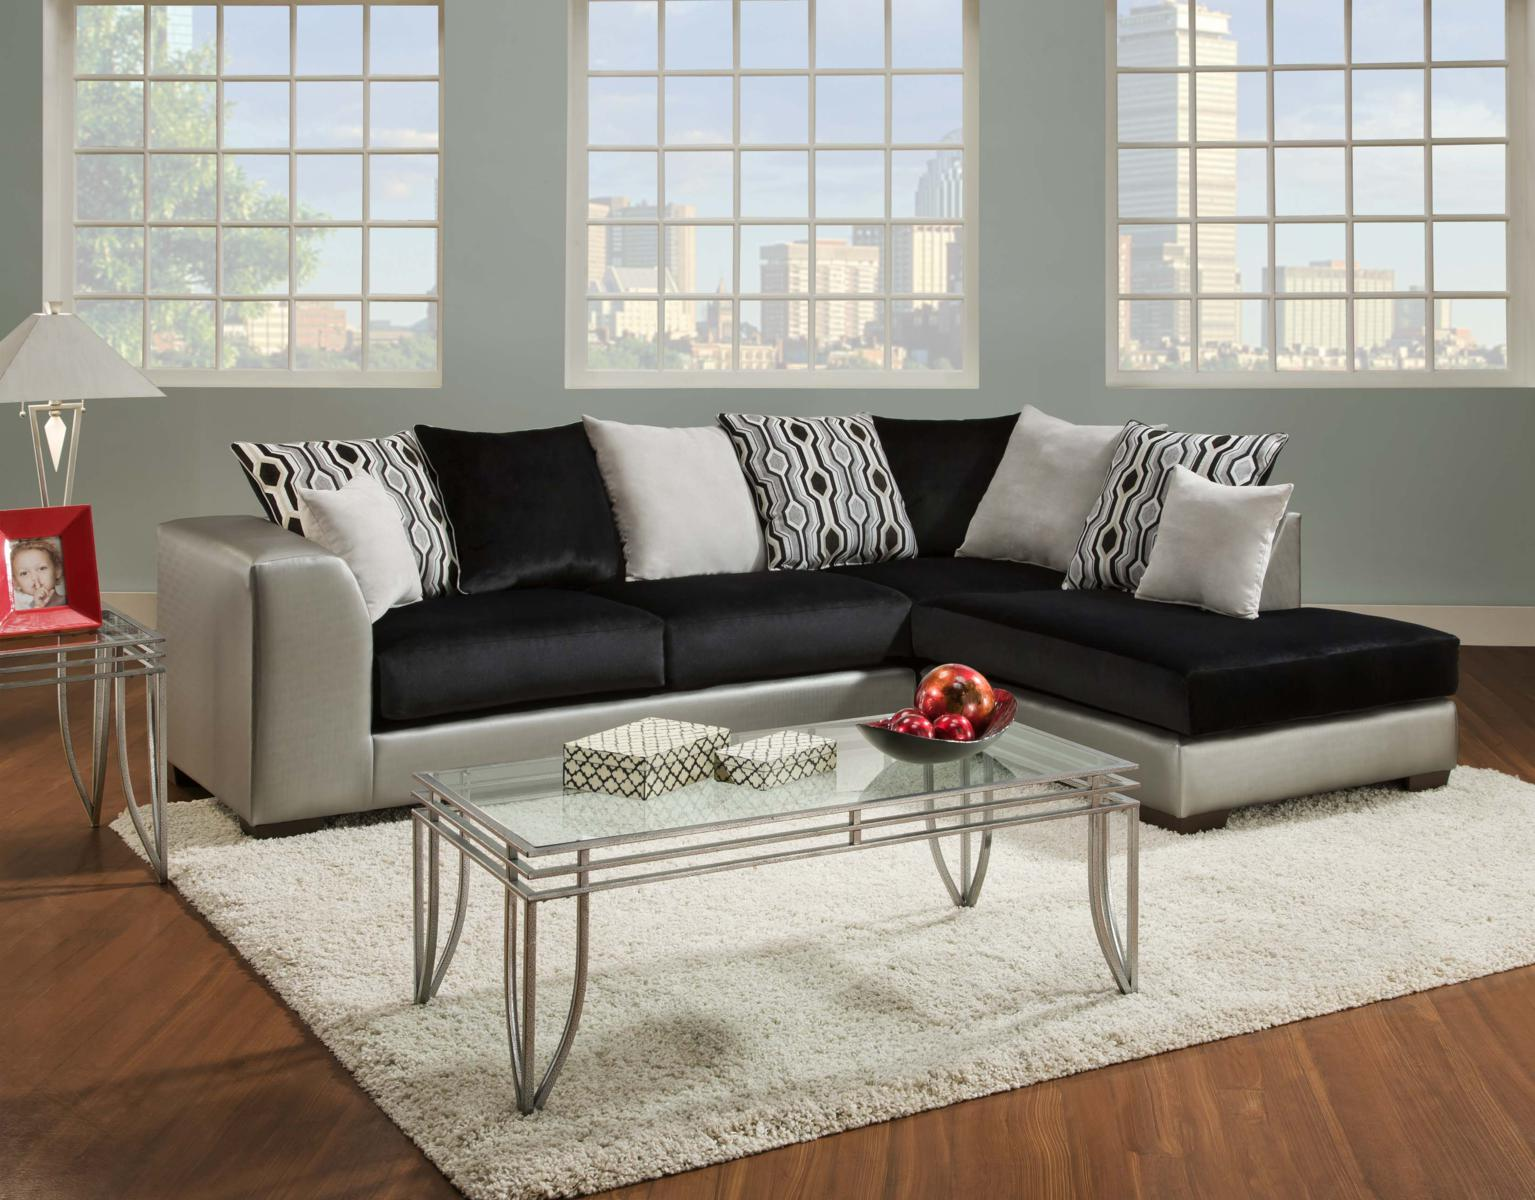 Sigma 2 Piece Sectional Chelsea Home Furniture Home Gallery Stores Sectional Sofa Sectional Furniture